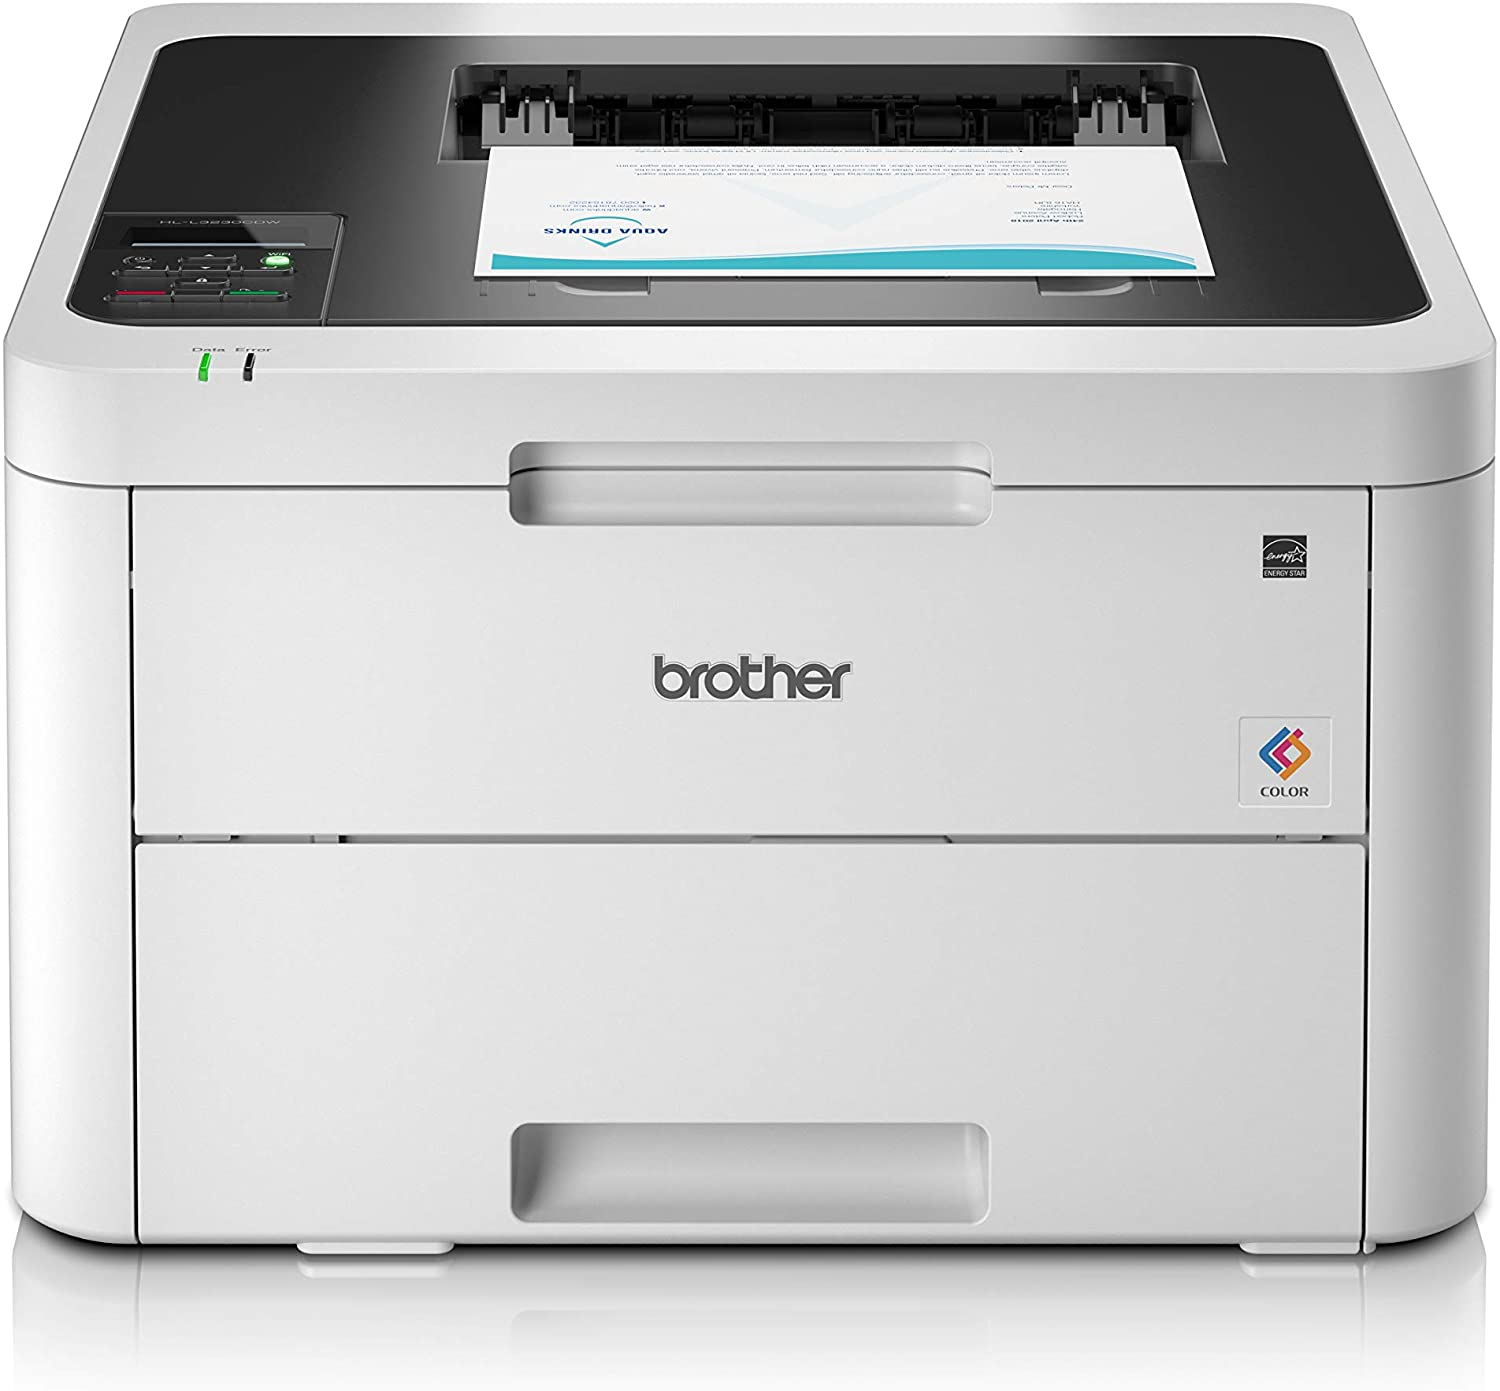 Brother HL-L3230CDW Colour Laser Printer - Single Function, Wireless, USB 2.0, 2 Sided Printing, A4 Best Color Laser Printer, Small Office, Home Office Printer